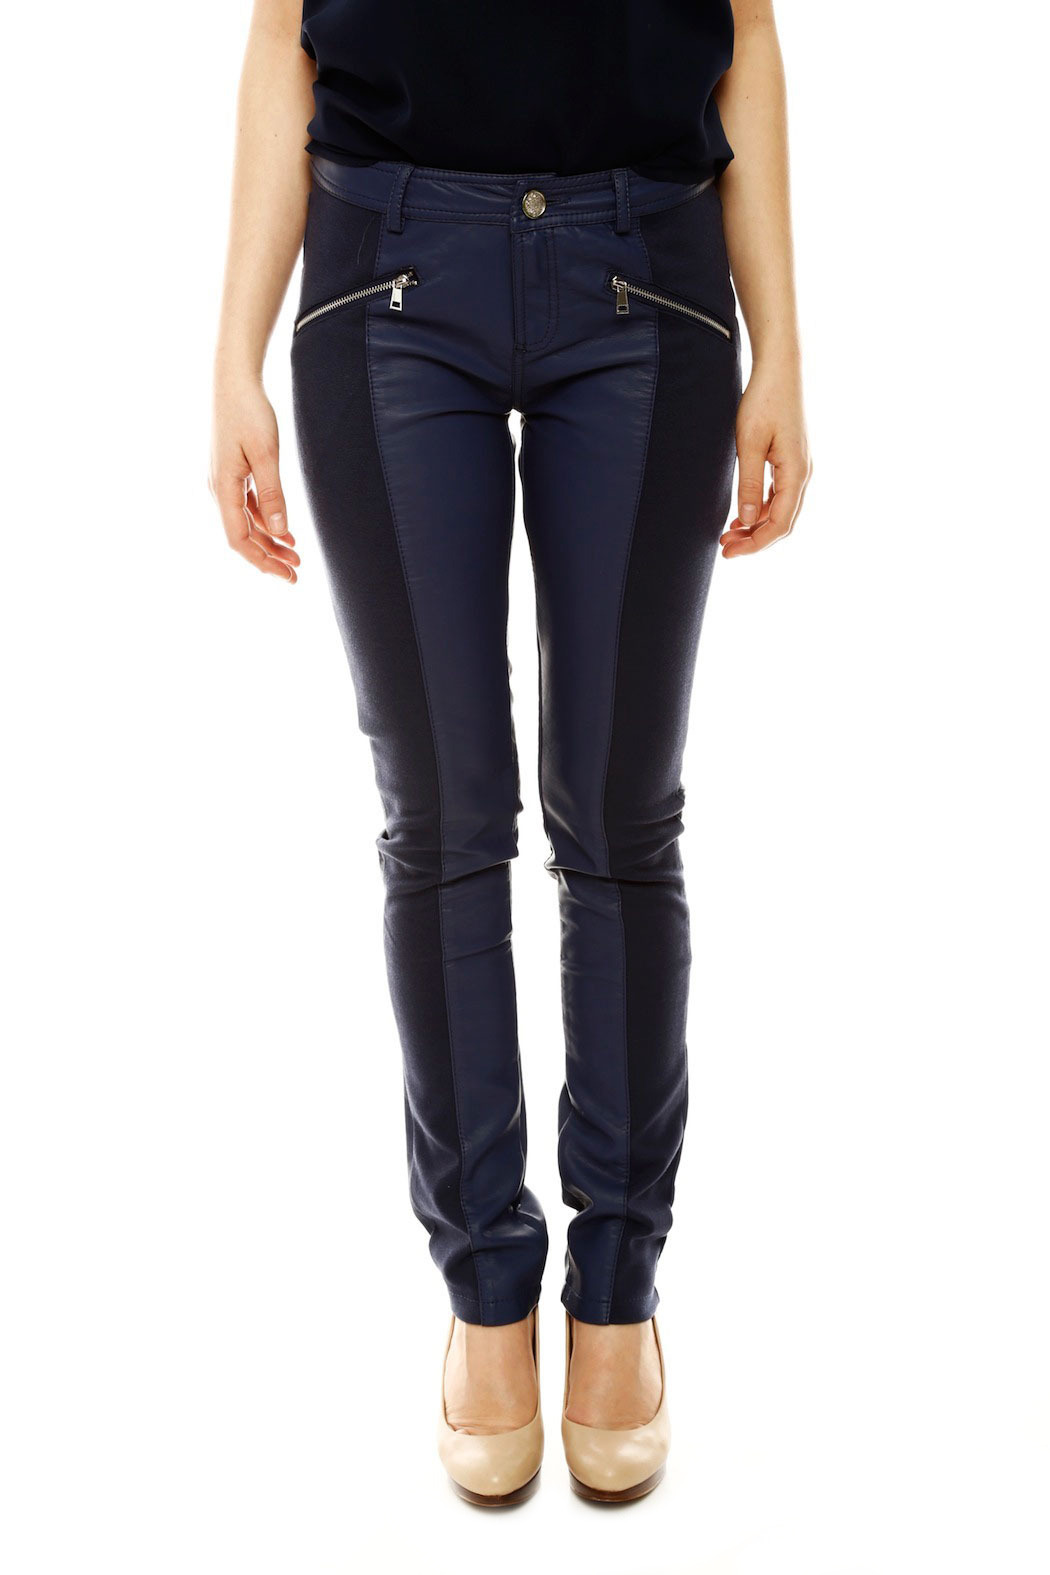 Laura Jo Navy Faux Leather Pants from Geneva by C'est La Vie ...